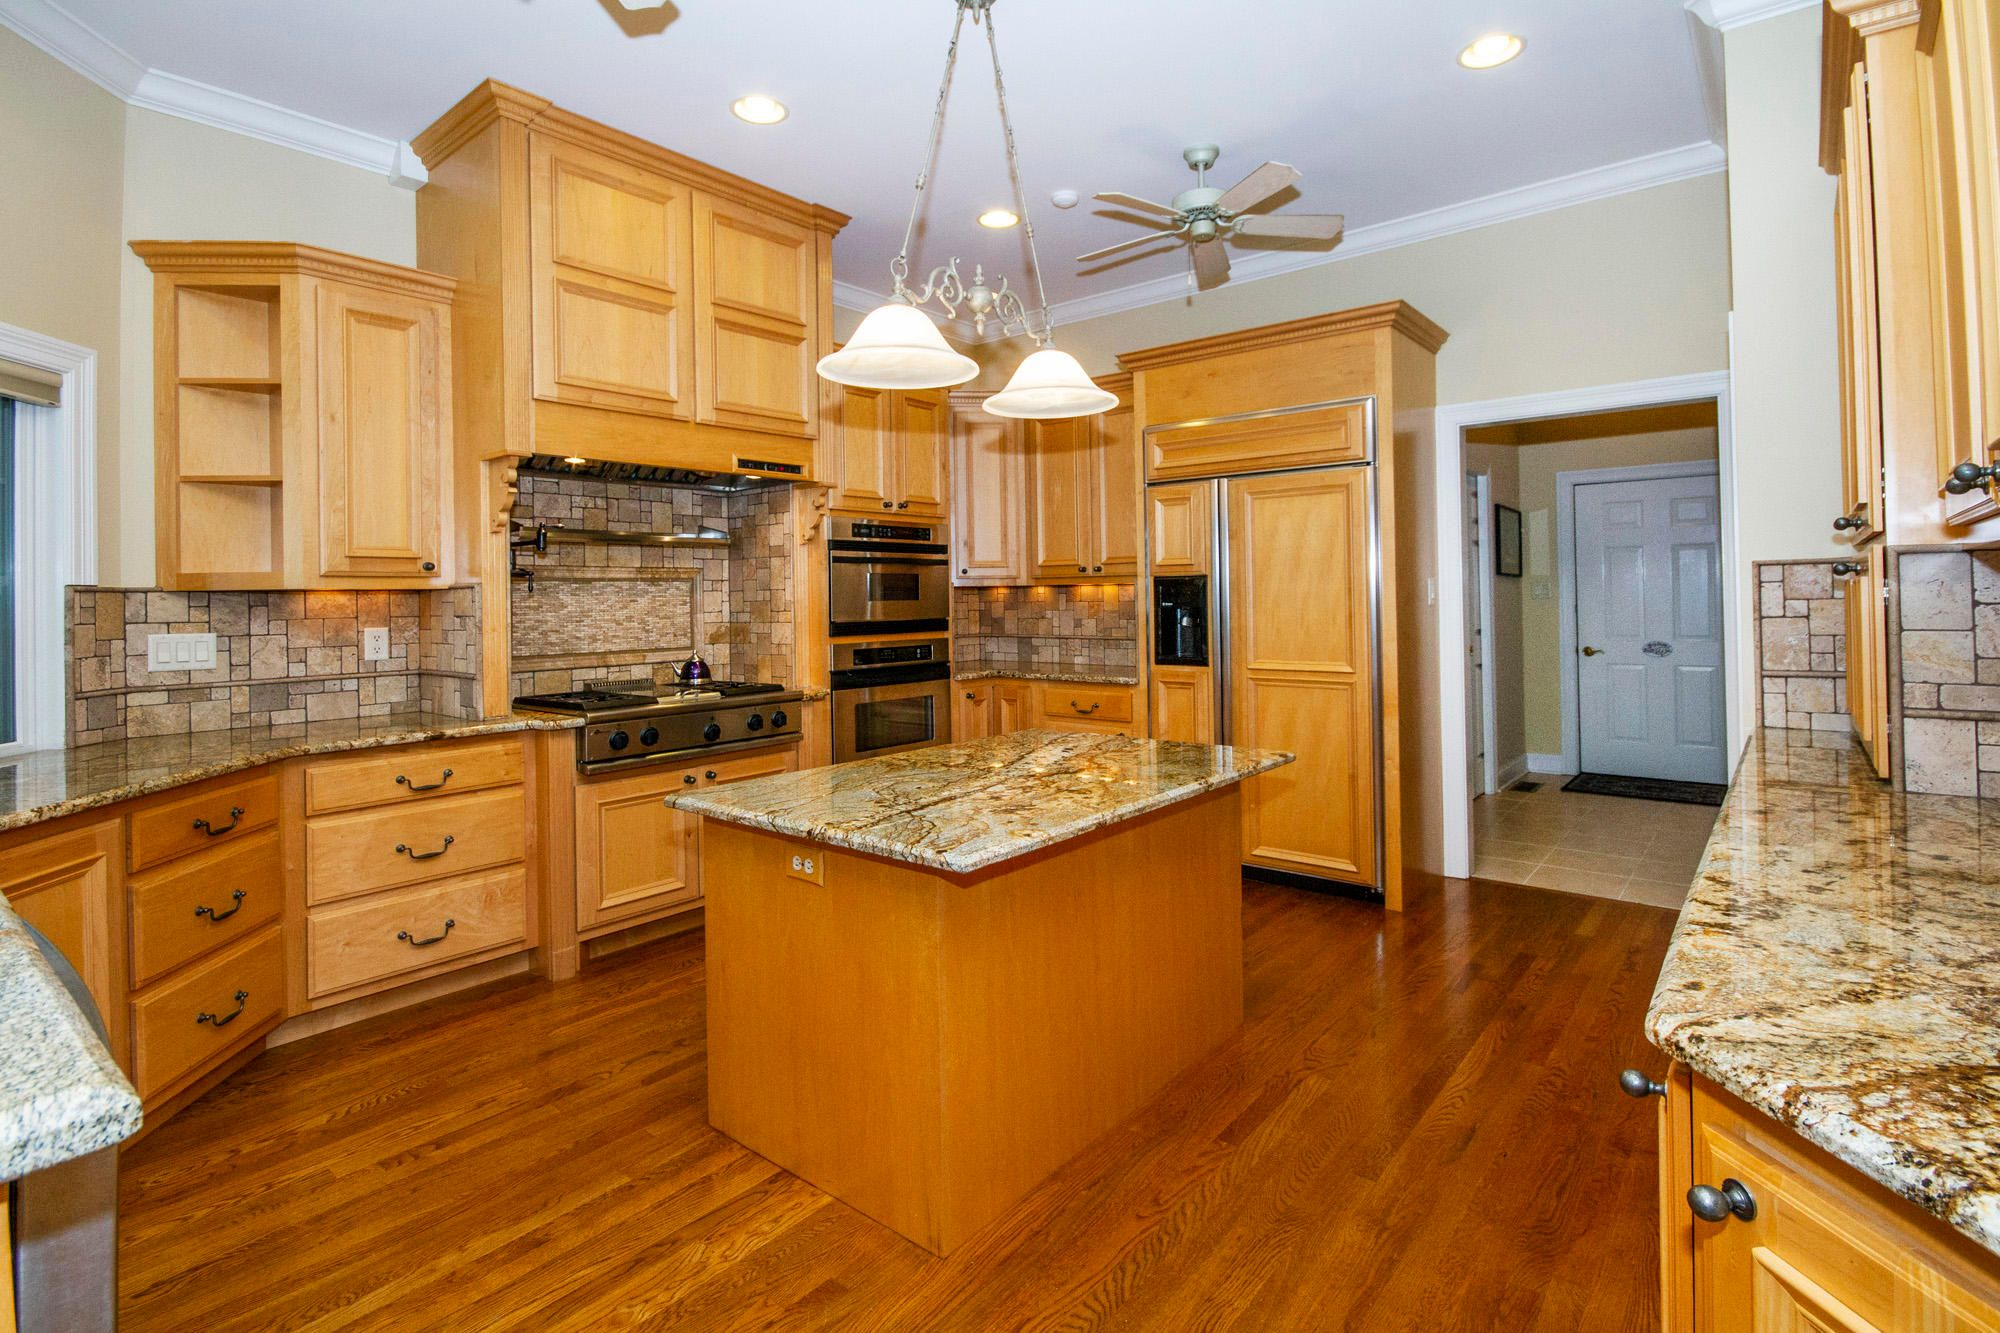 Gourmet Kitchen-Beautiful Cabinetry!